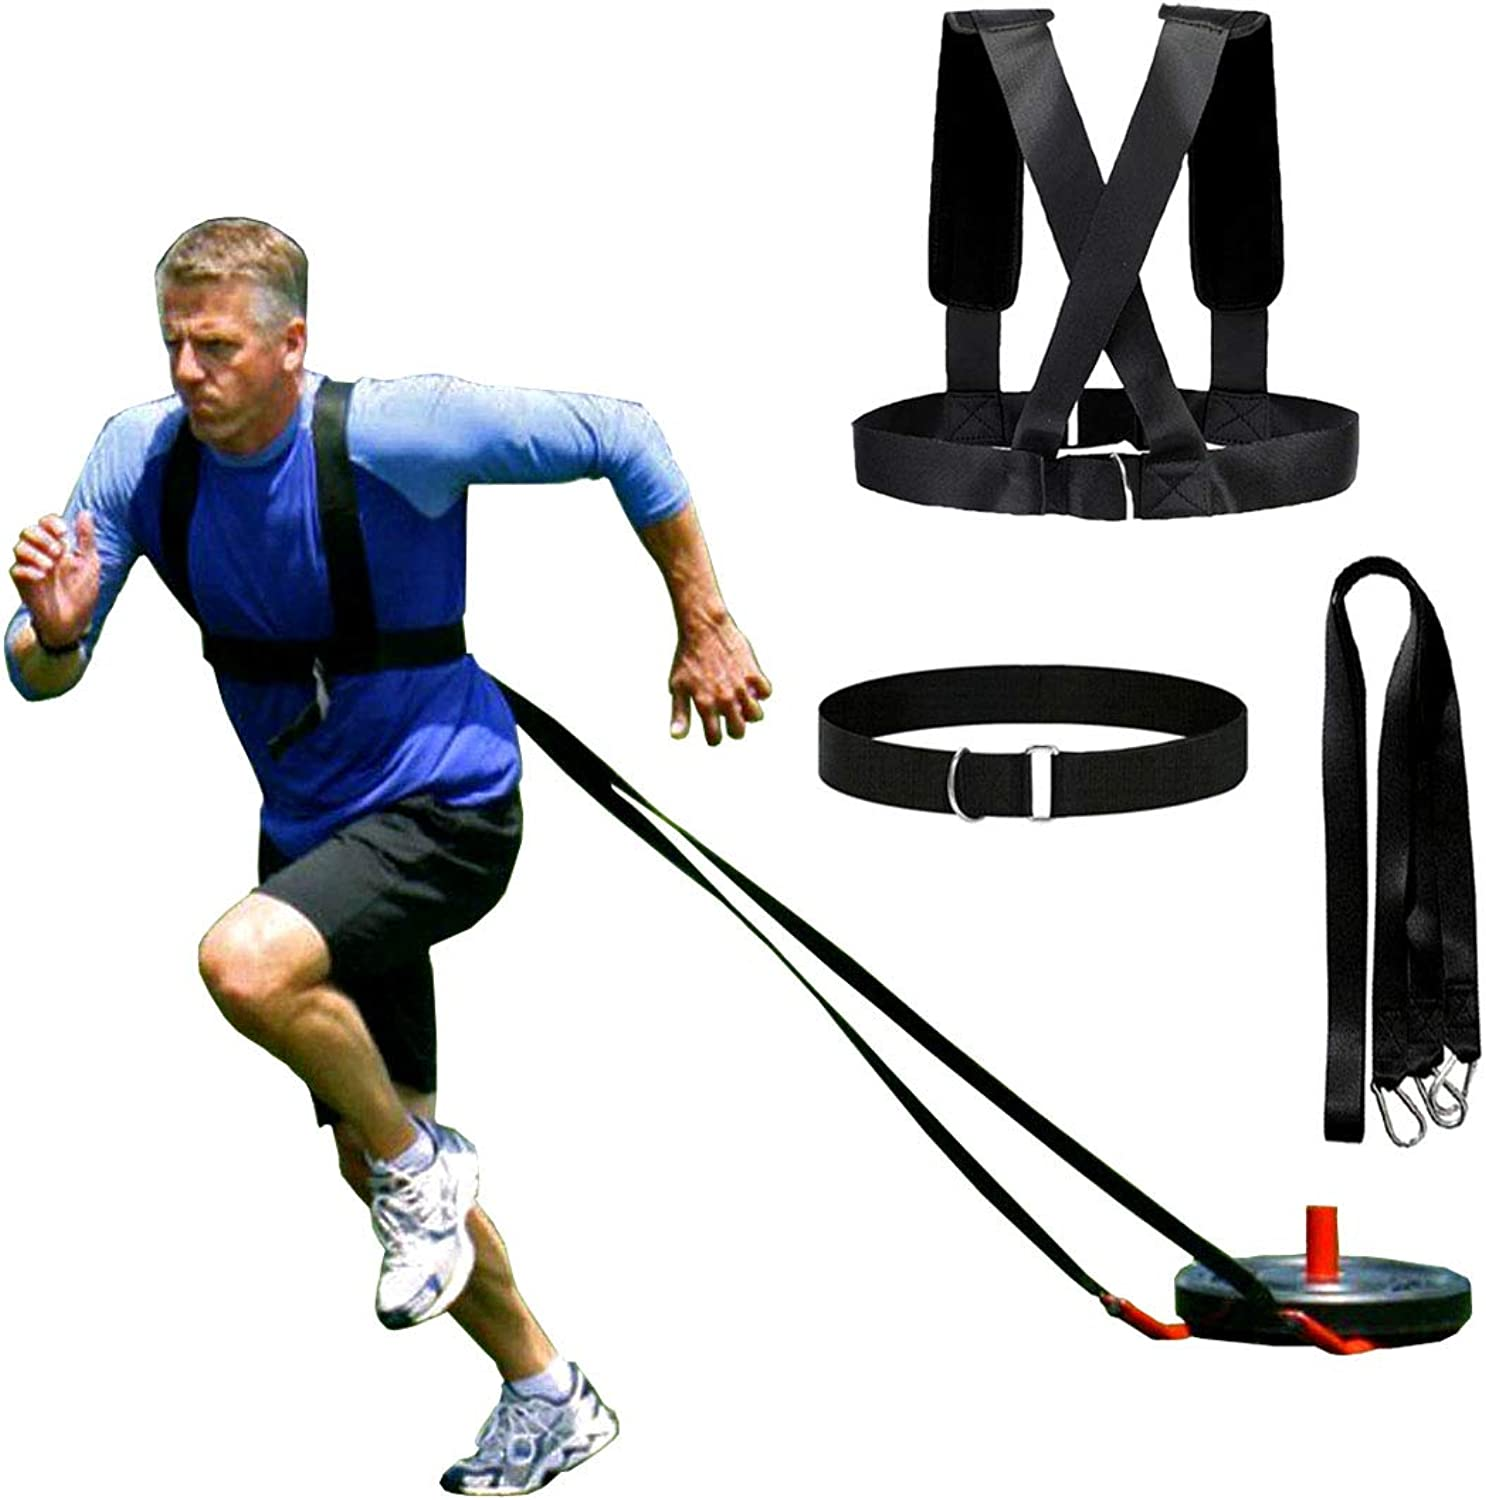 XJunion Speed Harness Trainer Power Sled Workout Harness, Tire Pulling Harness, Football Workout Equipment Sled Harness Pull Strap Resistance Training Team Sports Speed Agility Training Kits